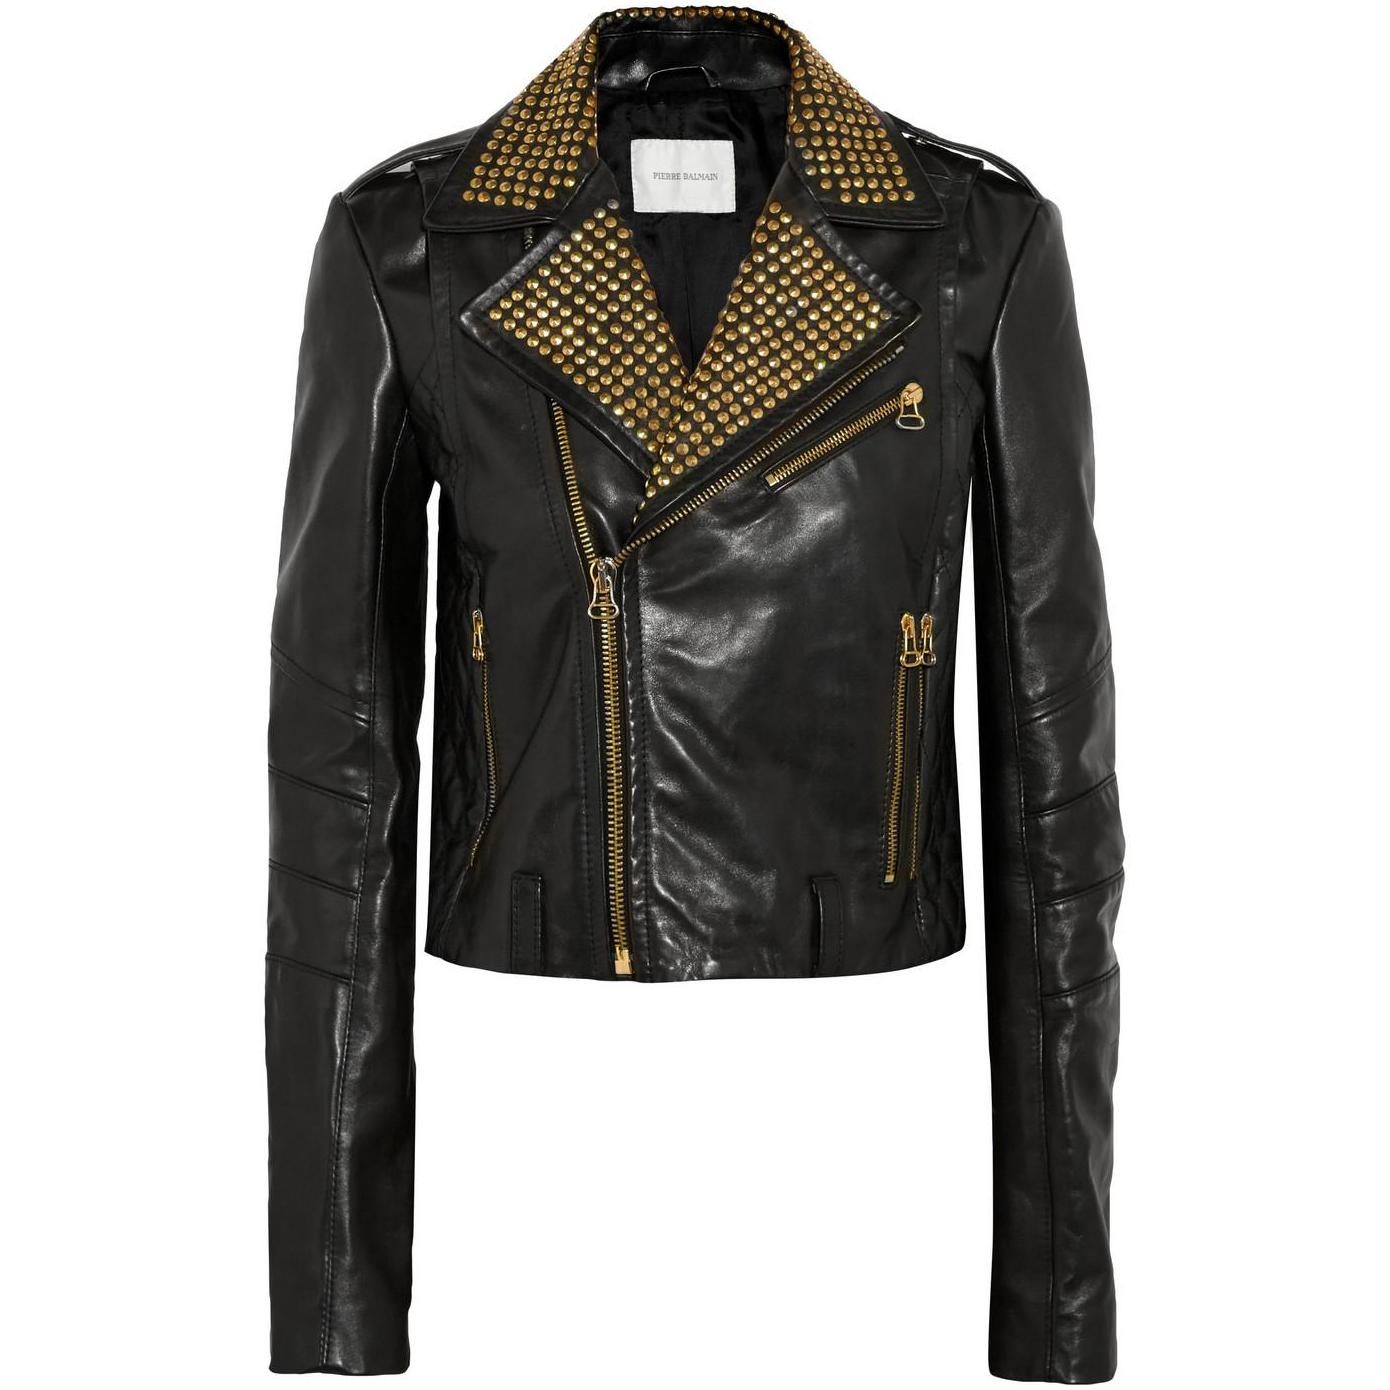 Pierre Balmain Leather Jacket | Balmain Leather Jacket | Black Balmains